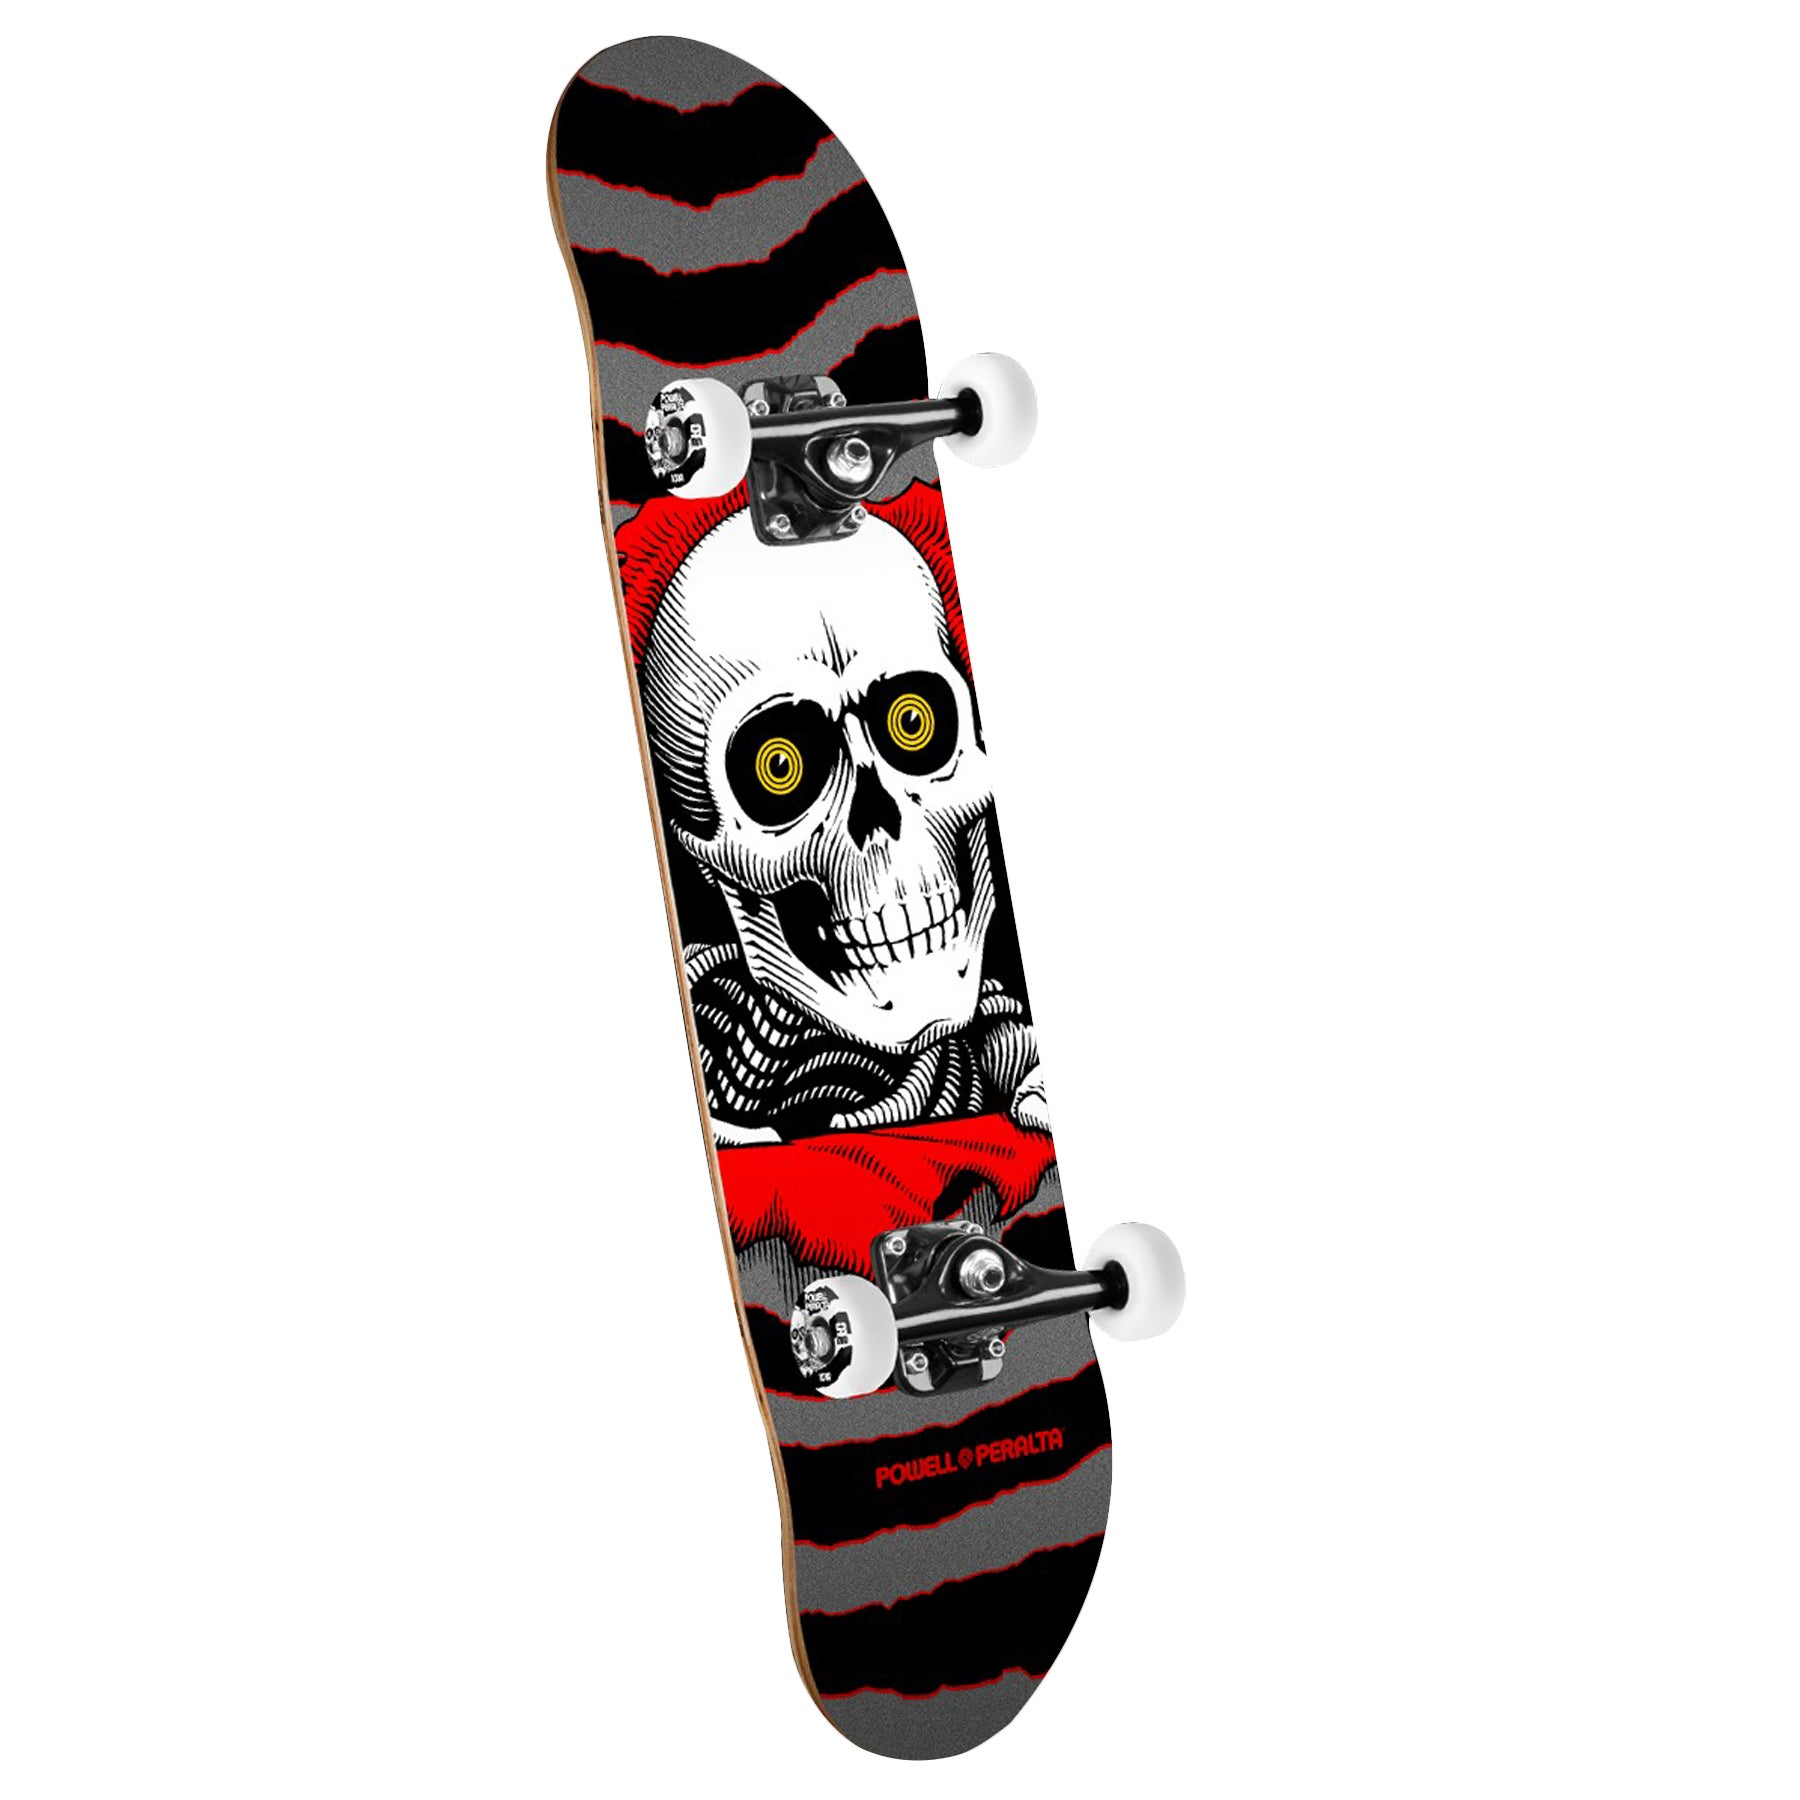 Powell Ripper 8 Inch Complete Skateboard - Natural/black